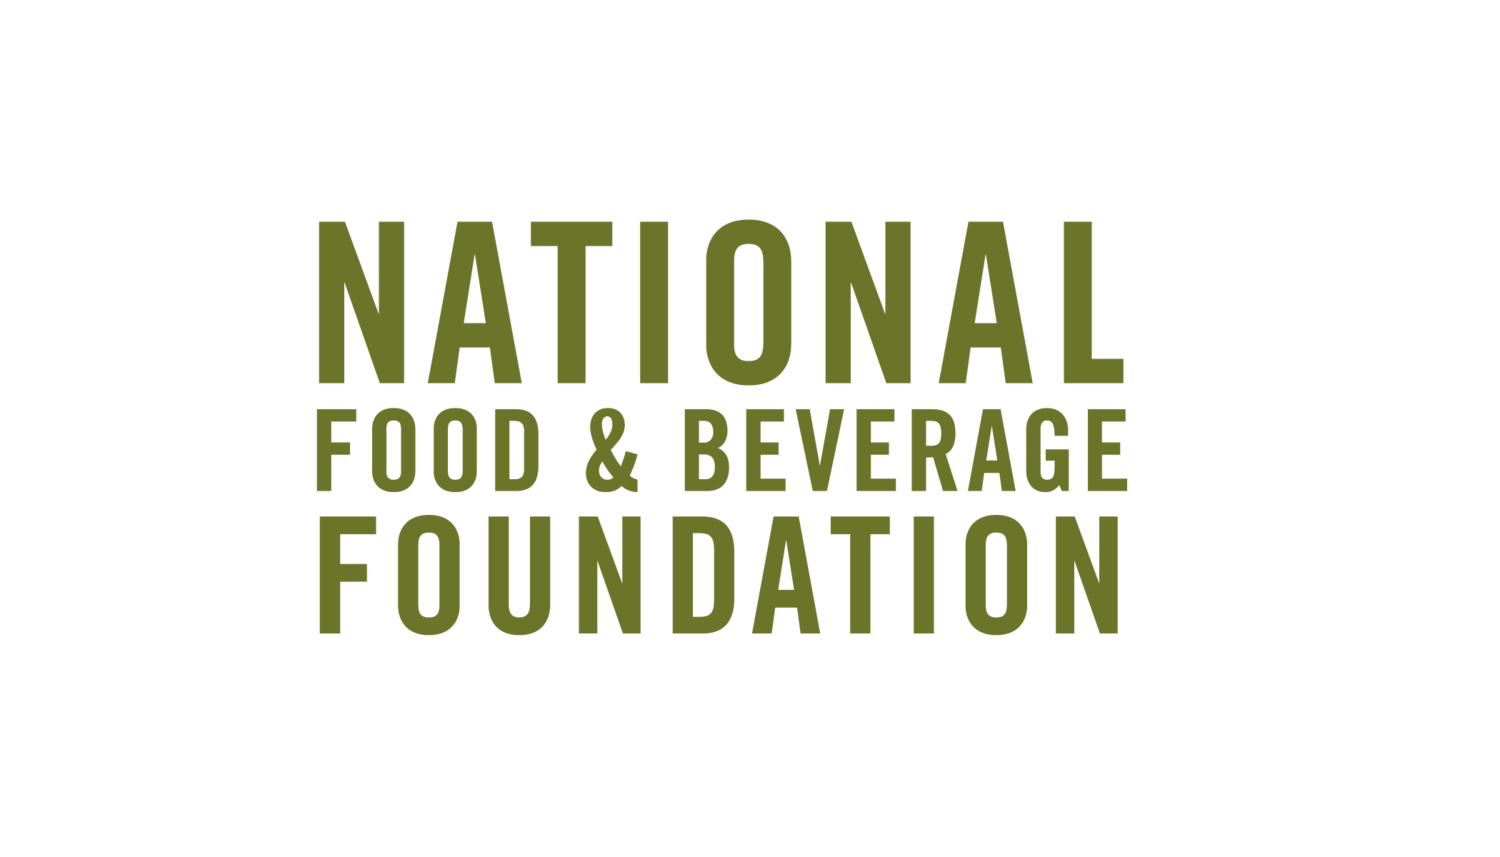 National Food & Beverage Foundation